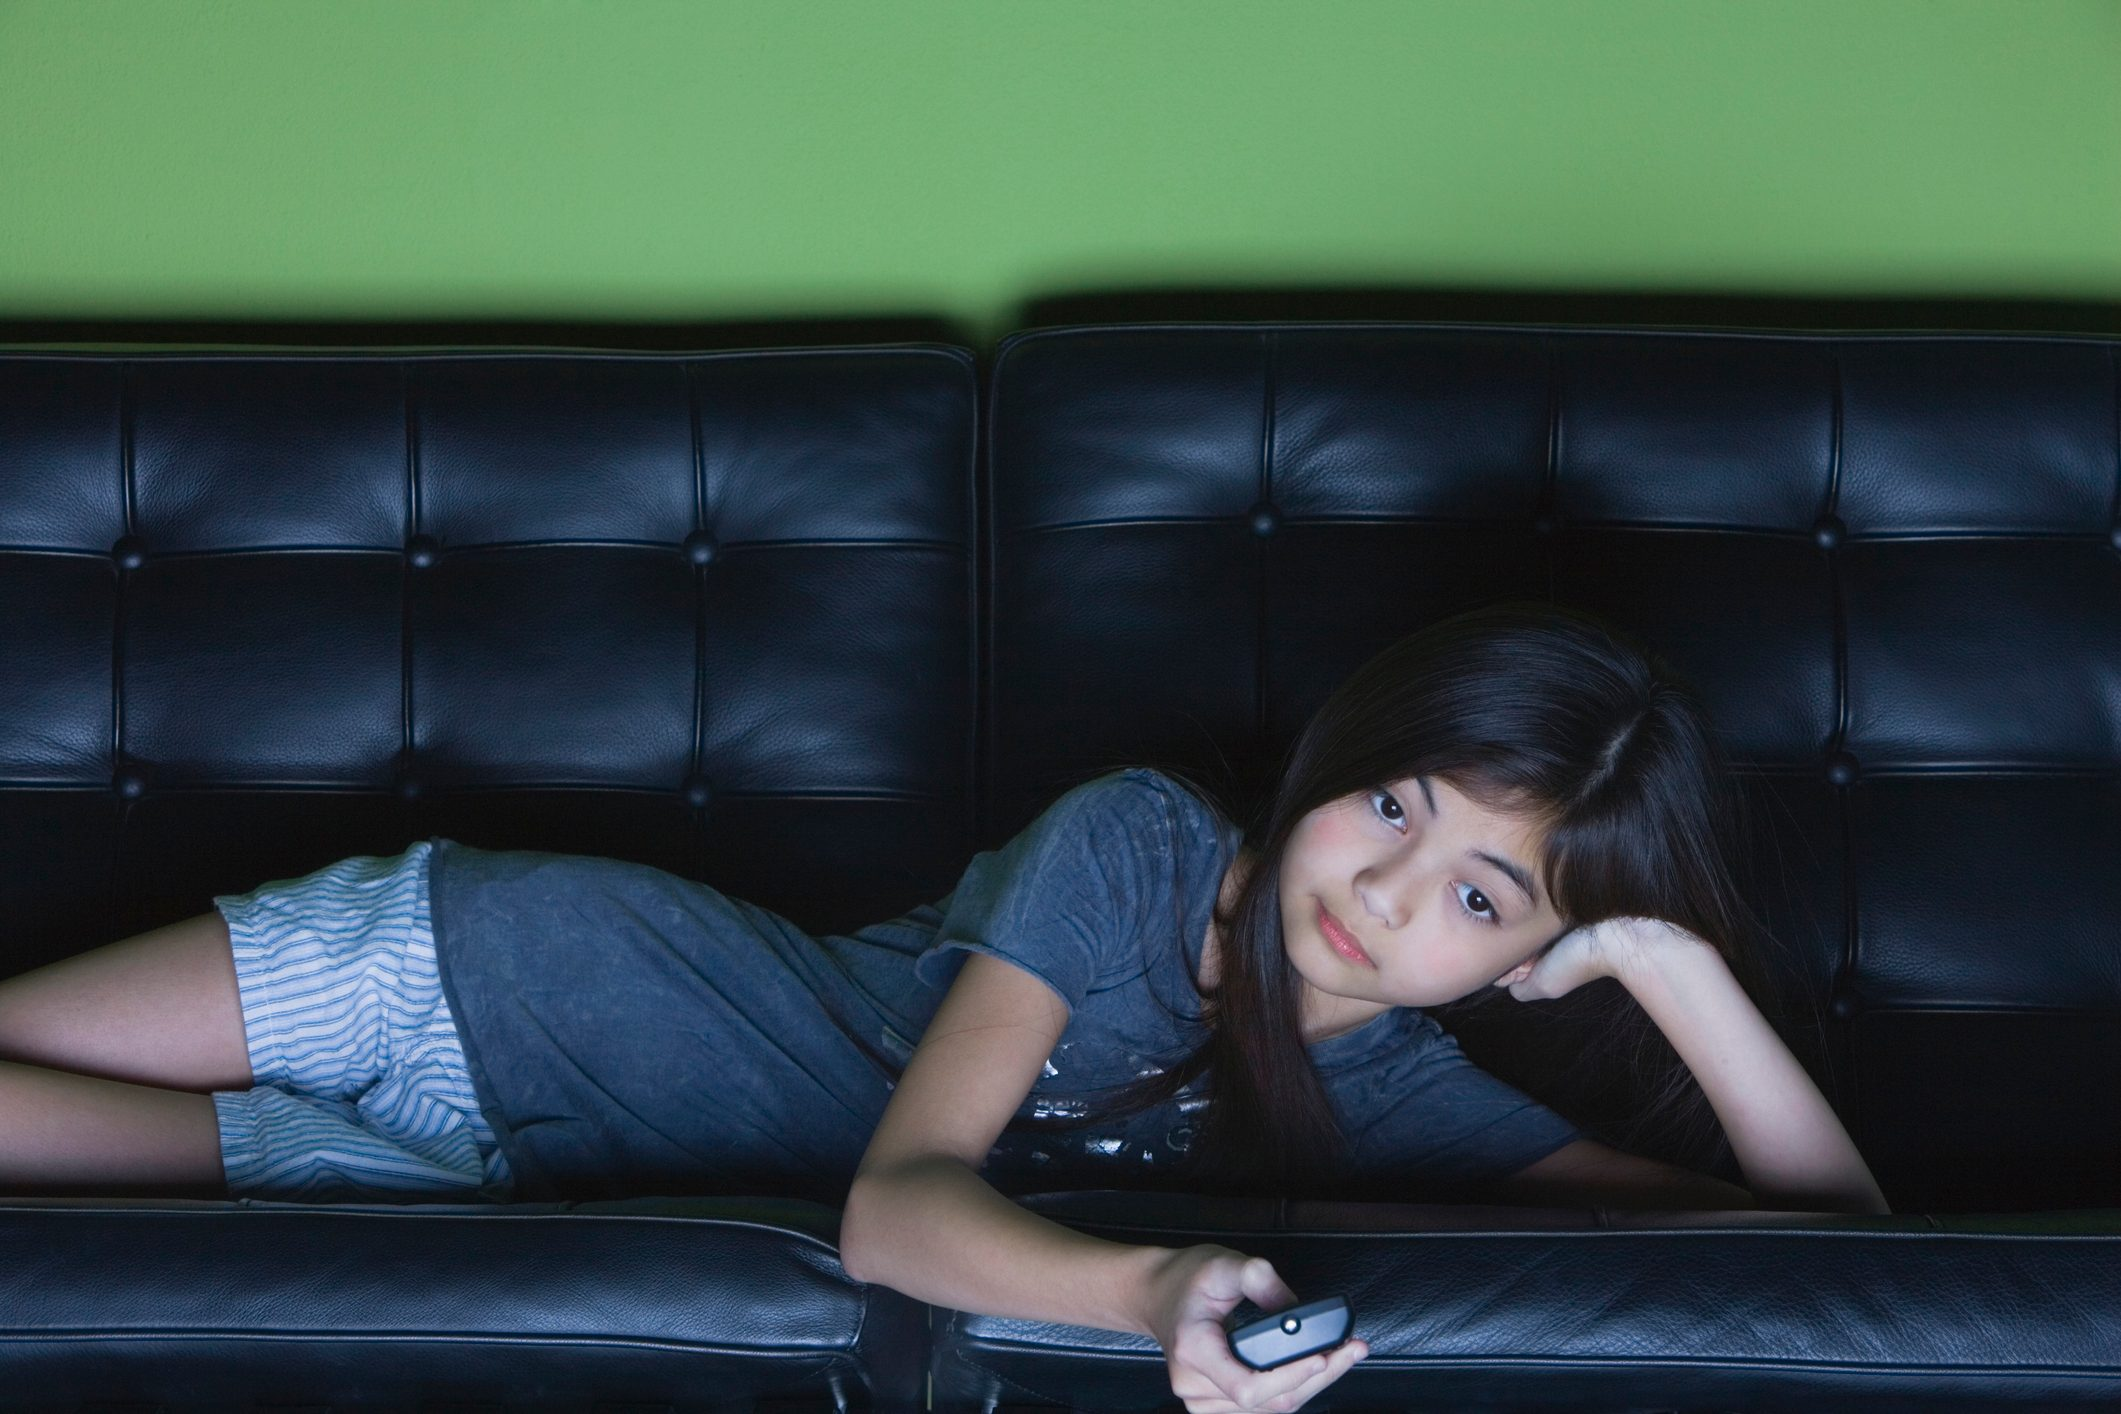 young girl lying on couch watching television